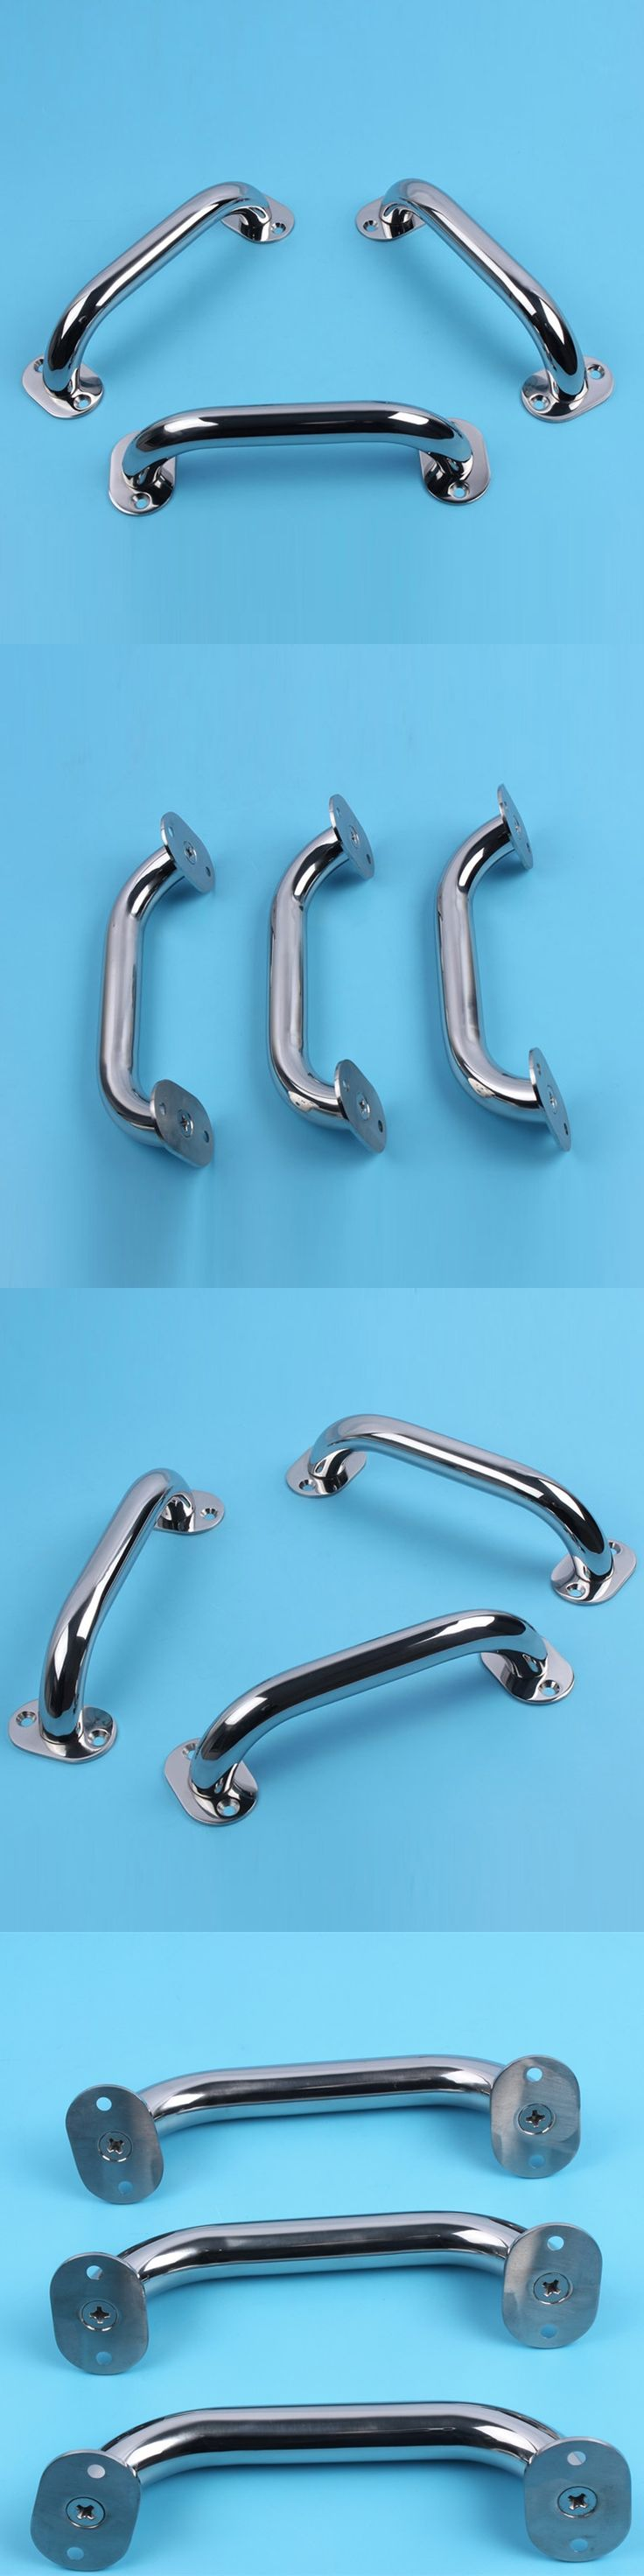 "9"" Mirror Polished 316 Stainless Steel Hatch Grab Handle Door Handrail 3 pieces boat accessories marine"